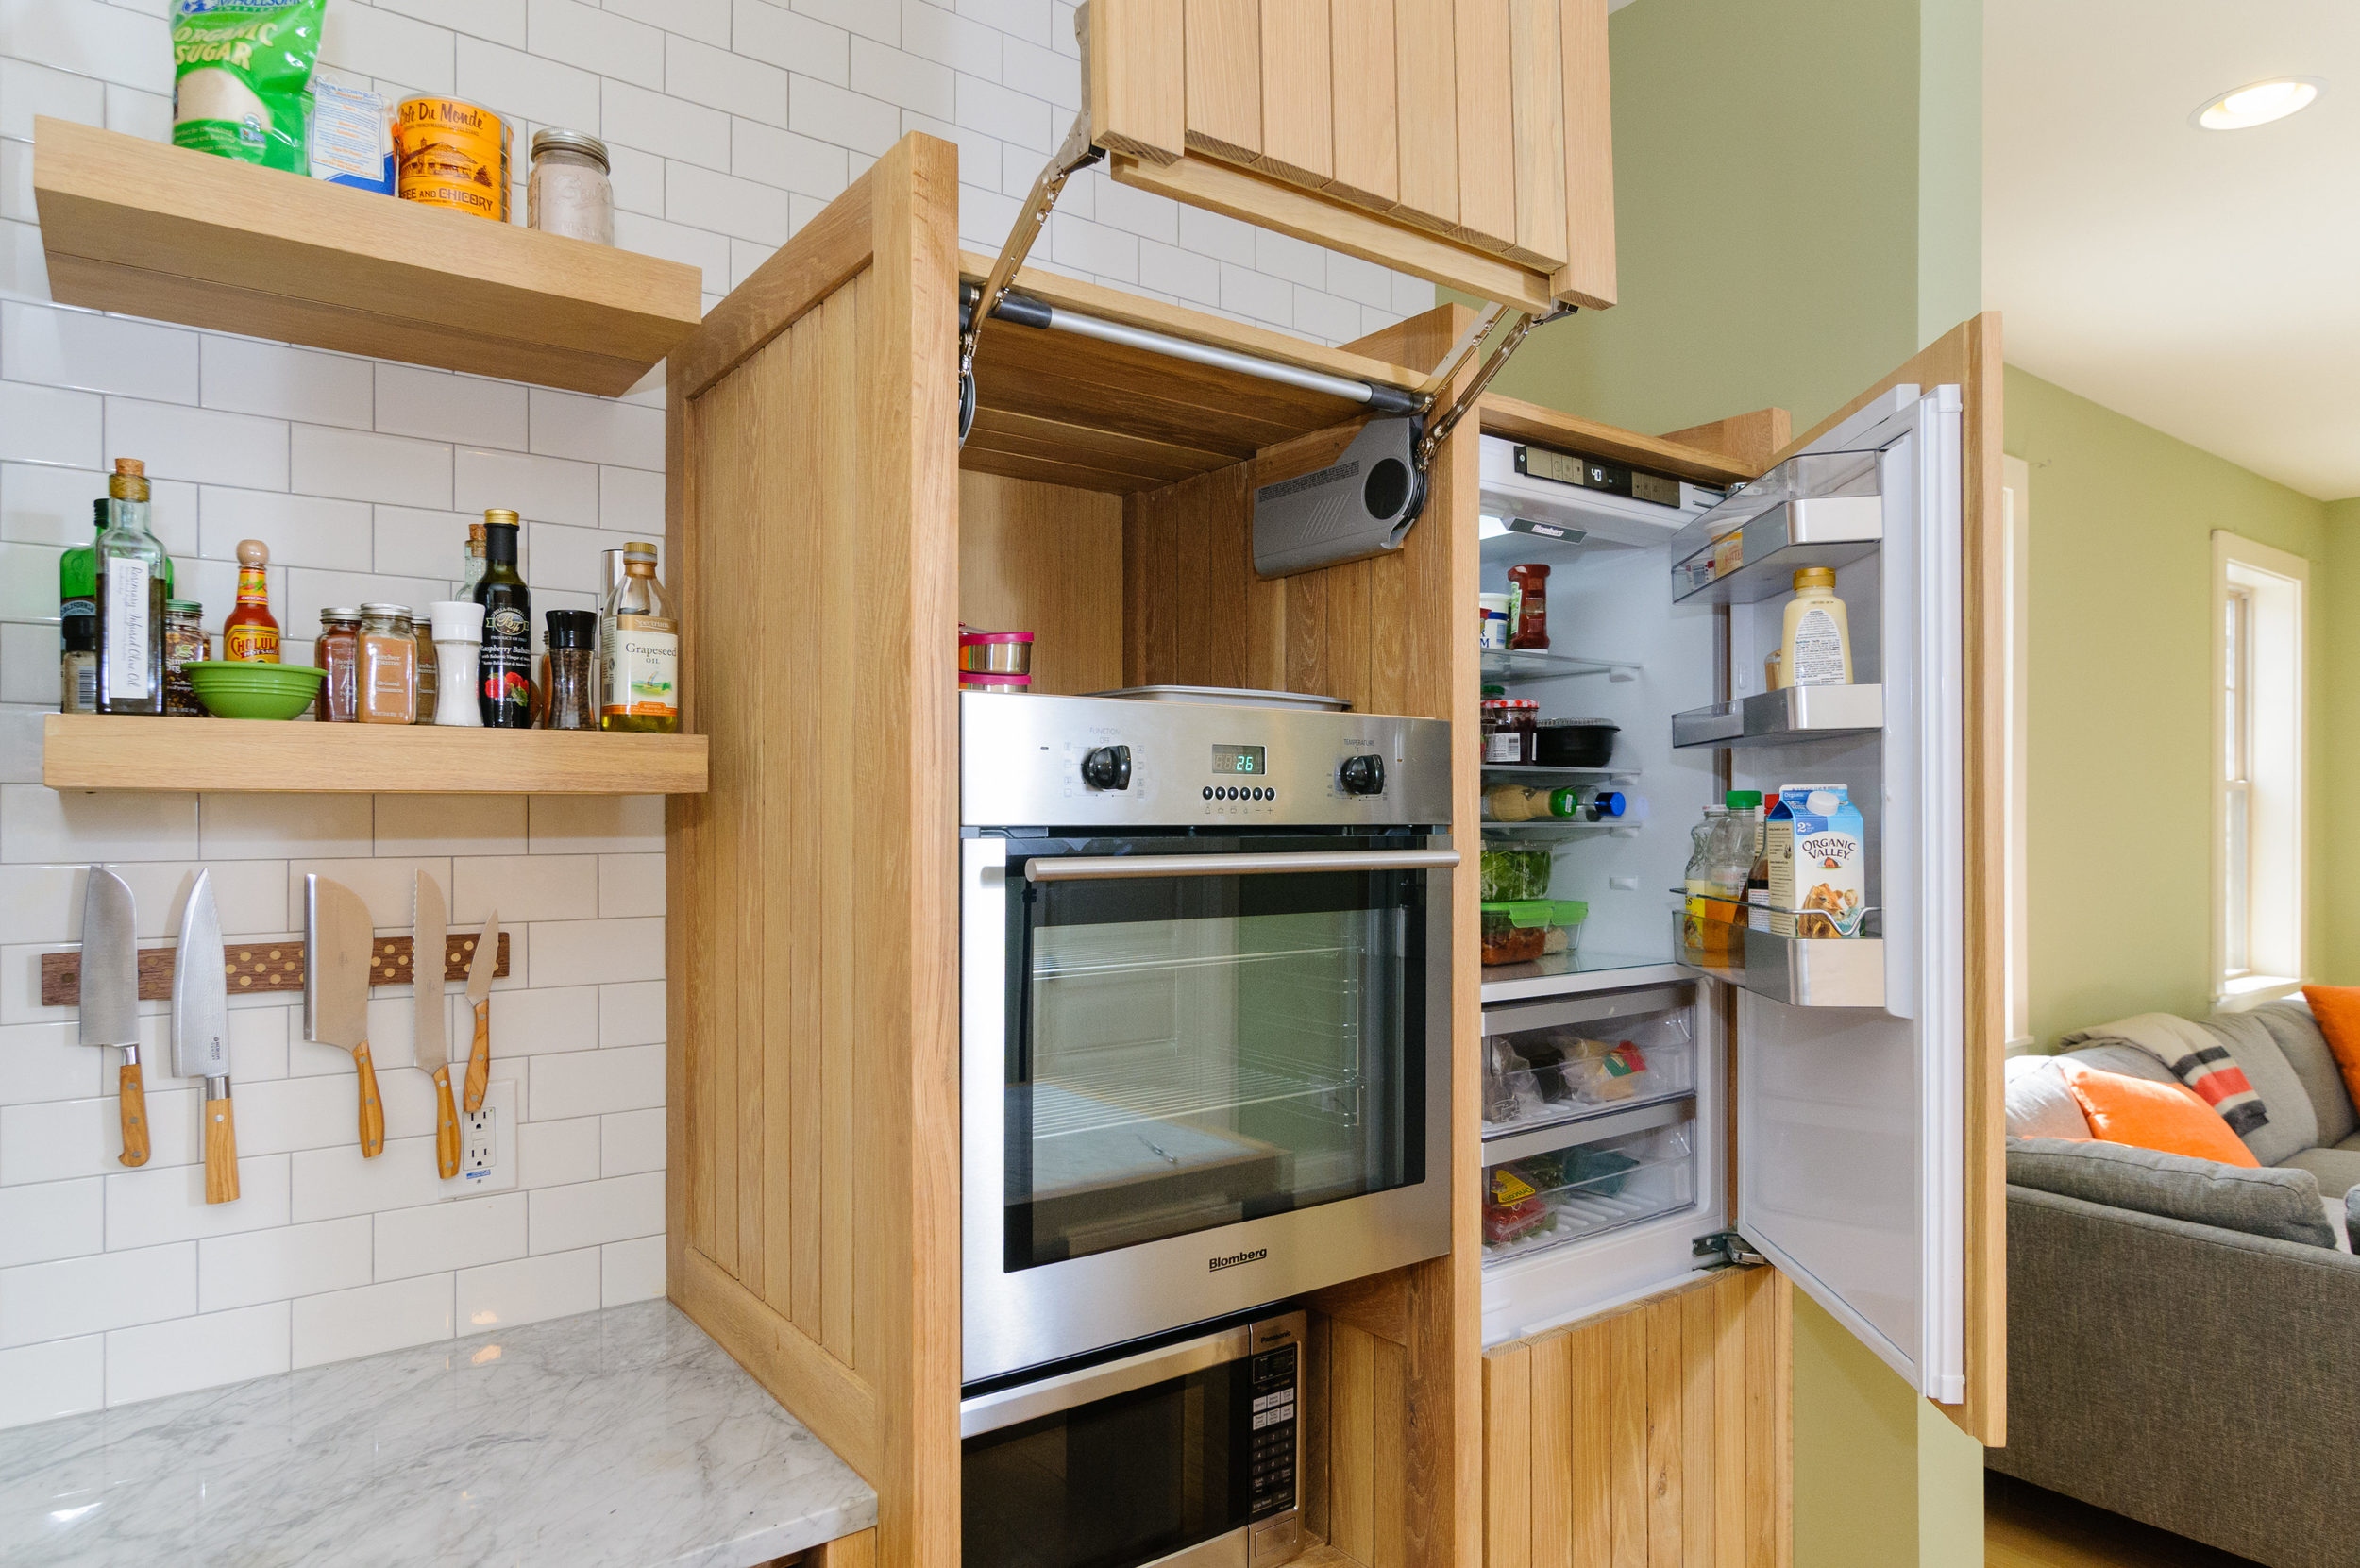 ROOST   TENON KITCHEN   INTEGRATED APPLIANCE TOWER